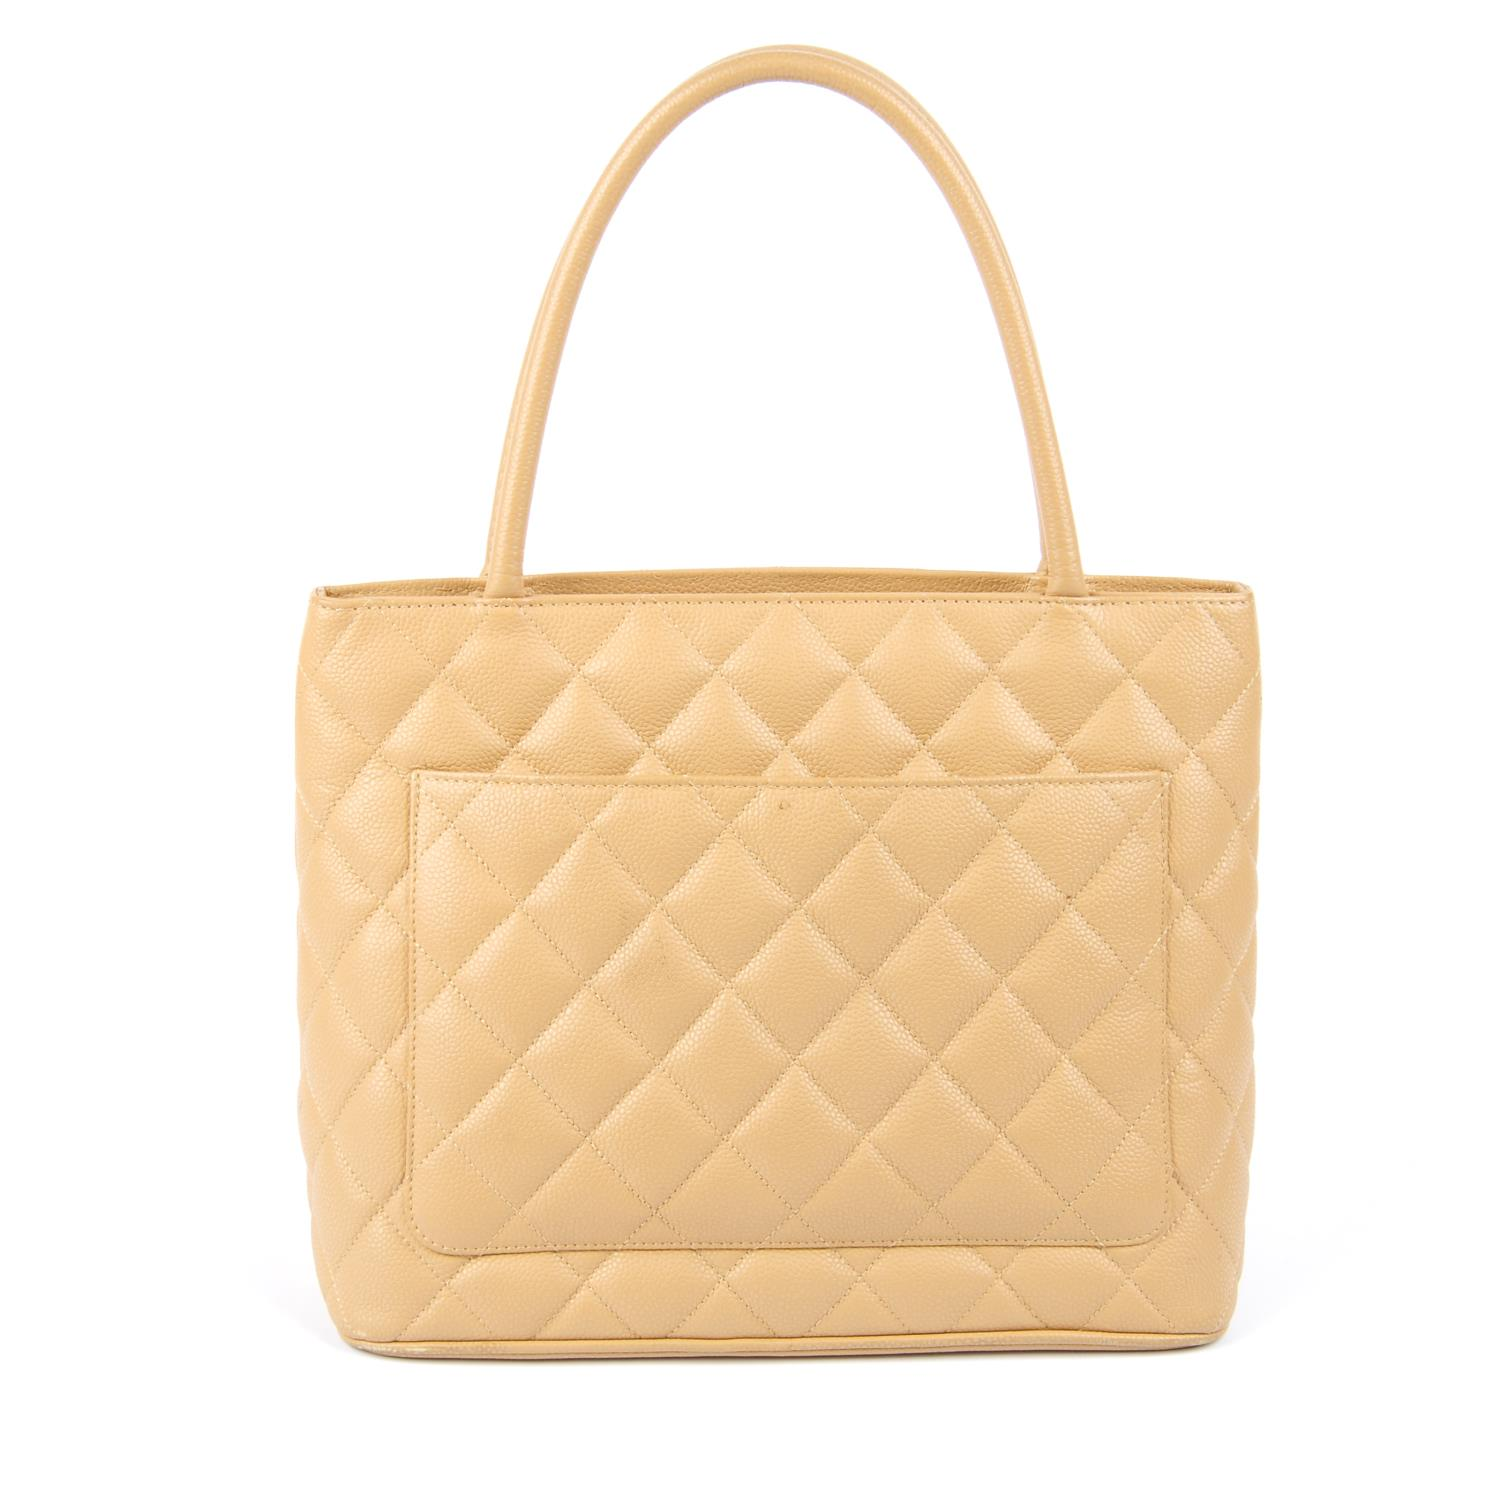 Lot 60 - CHANEL - a Medallion Tote.